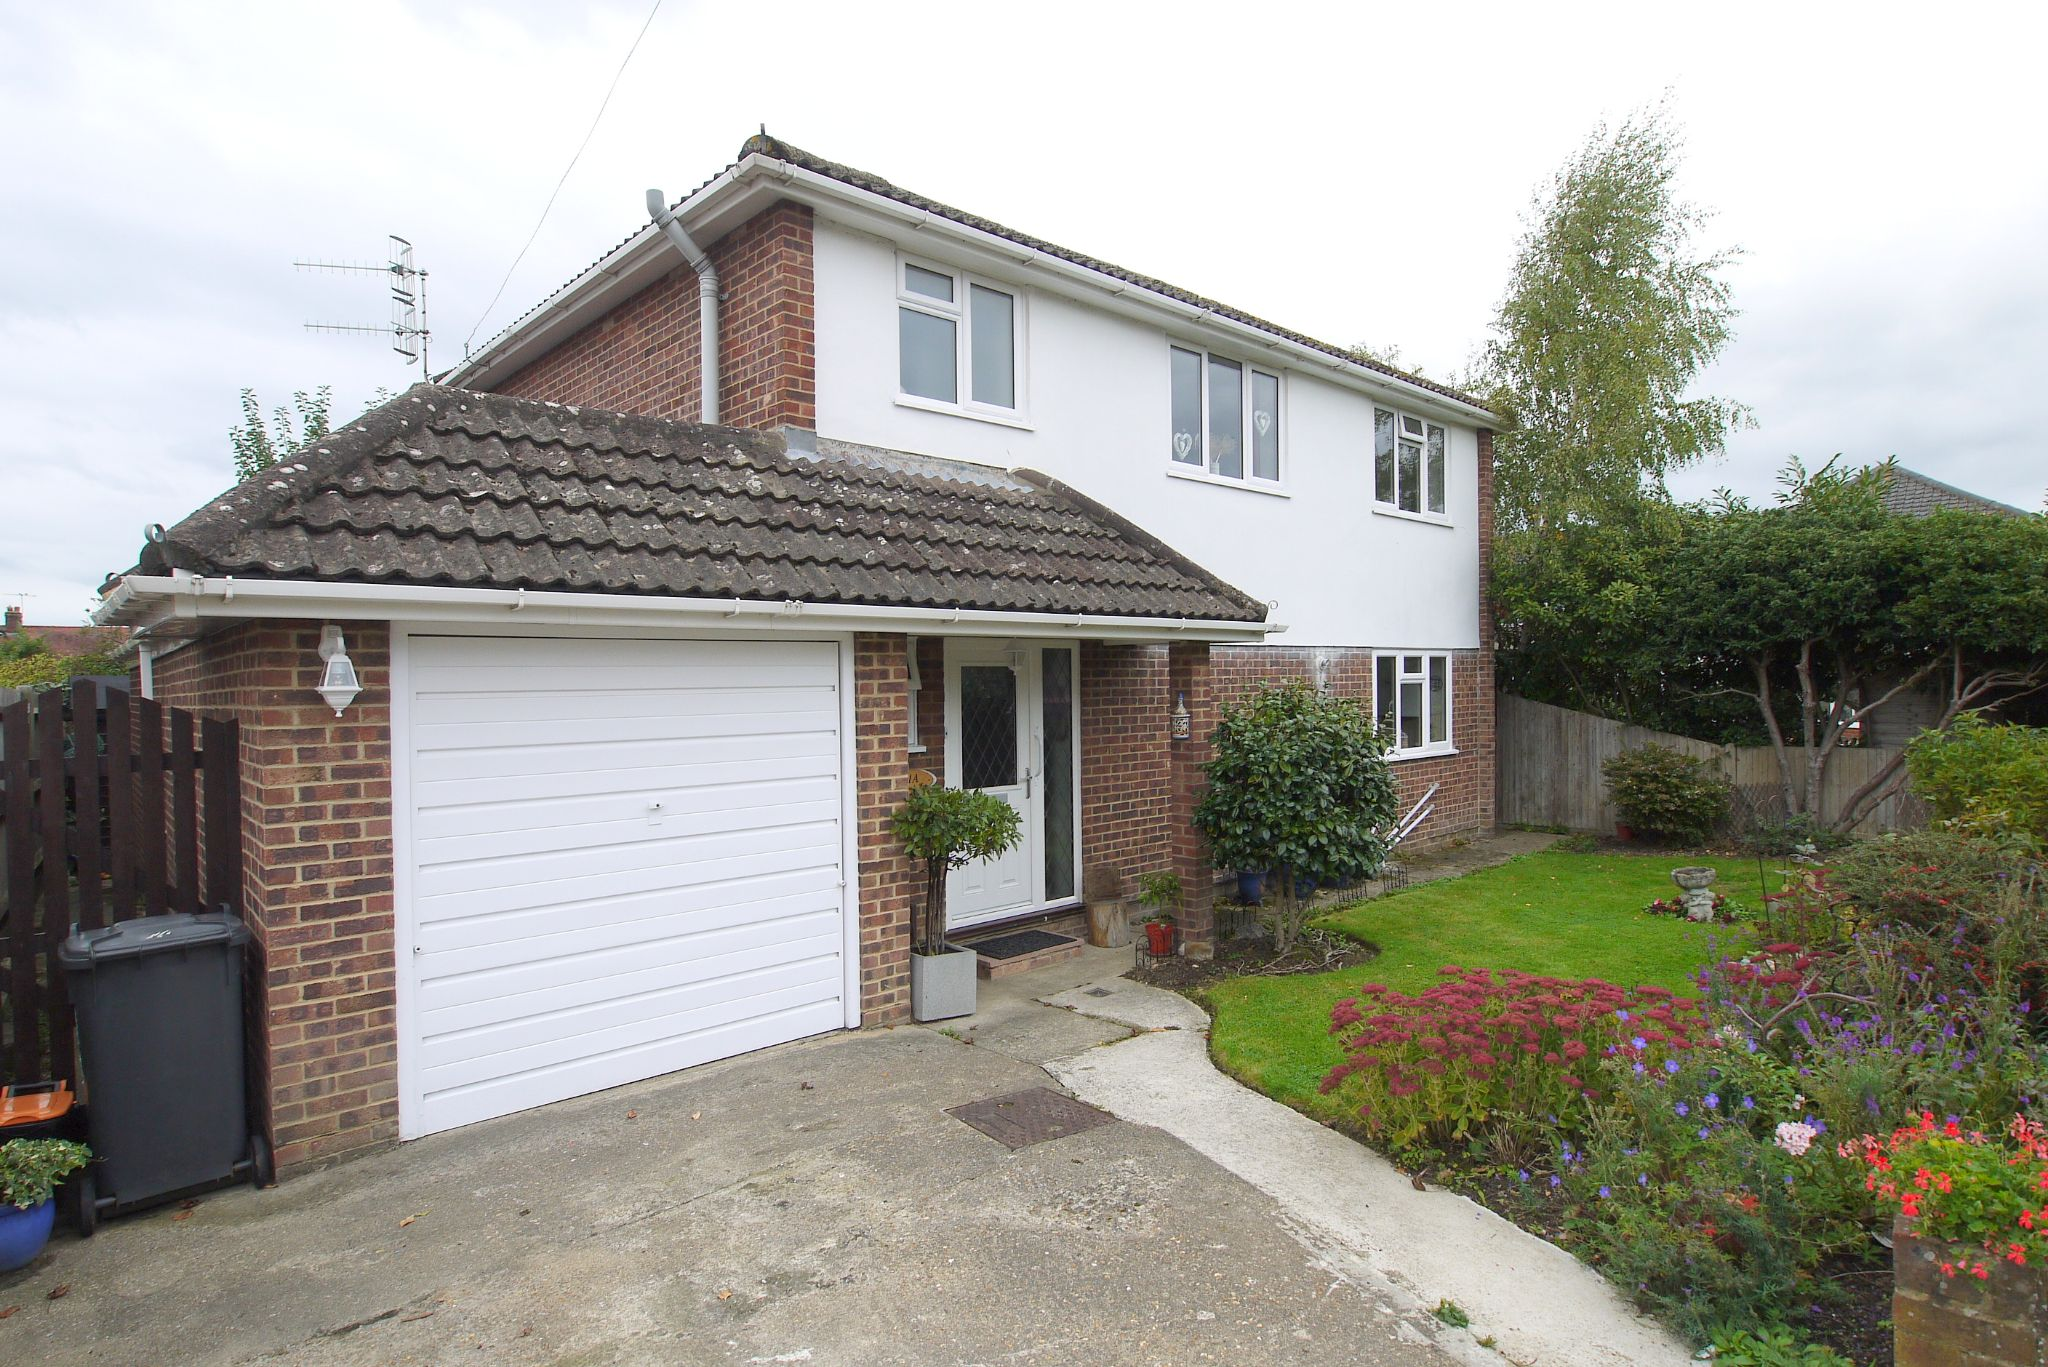 4 bedroom detached house For Sale in Tonbridge - Photograph 1